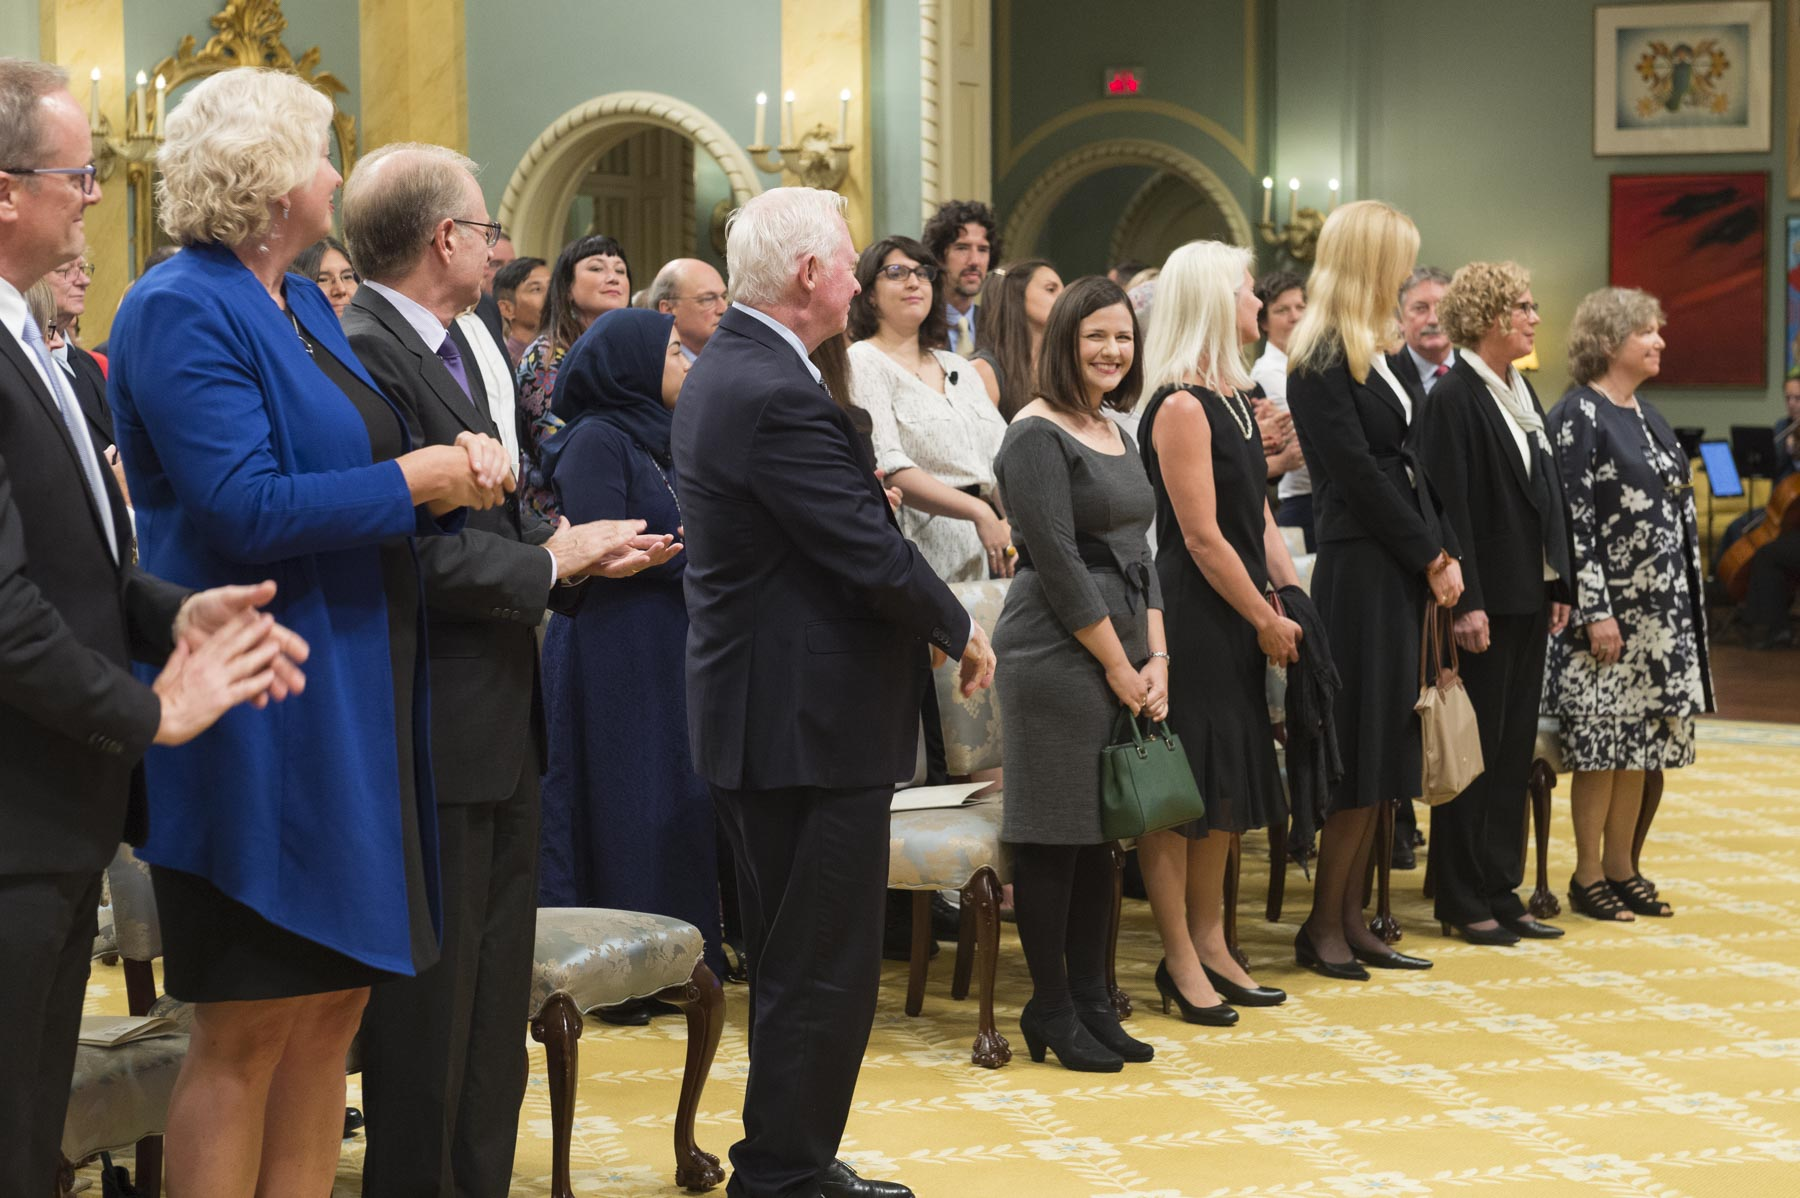 The Governor General presented the 2017 Social Sciences and Humanities Research Council (SSHRC) Impact Awards during a ceremony at Rideau Hall.